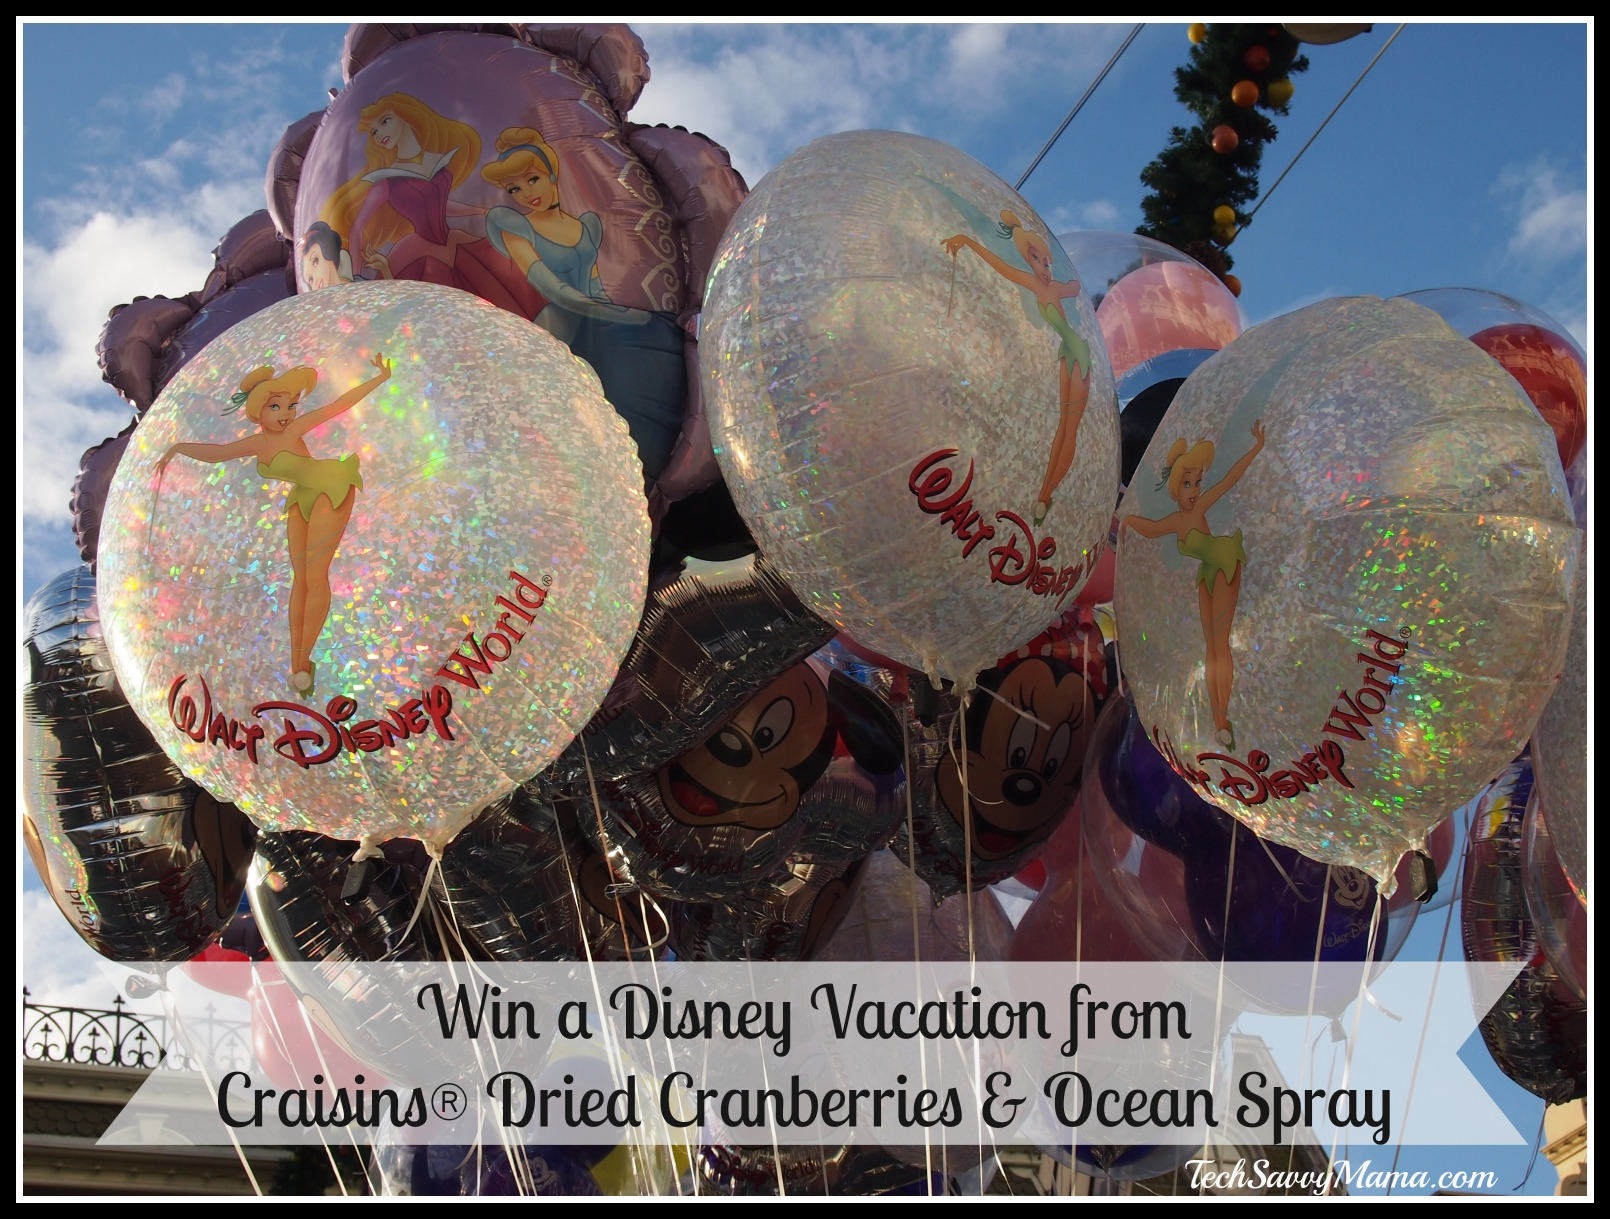 Win a Disney Vacation from Craisins® Dried Cranberries & Ocean Spray {sponsored}